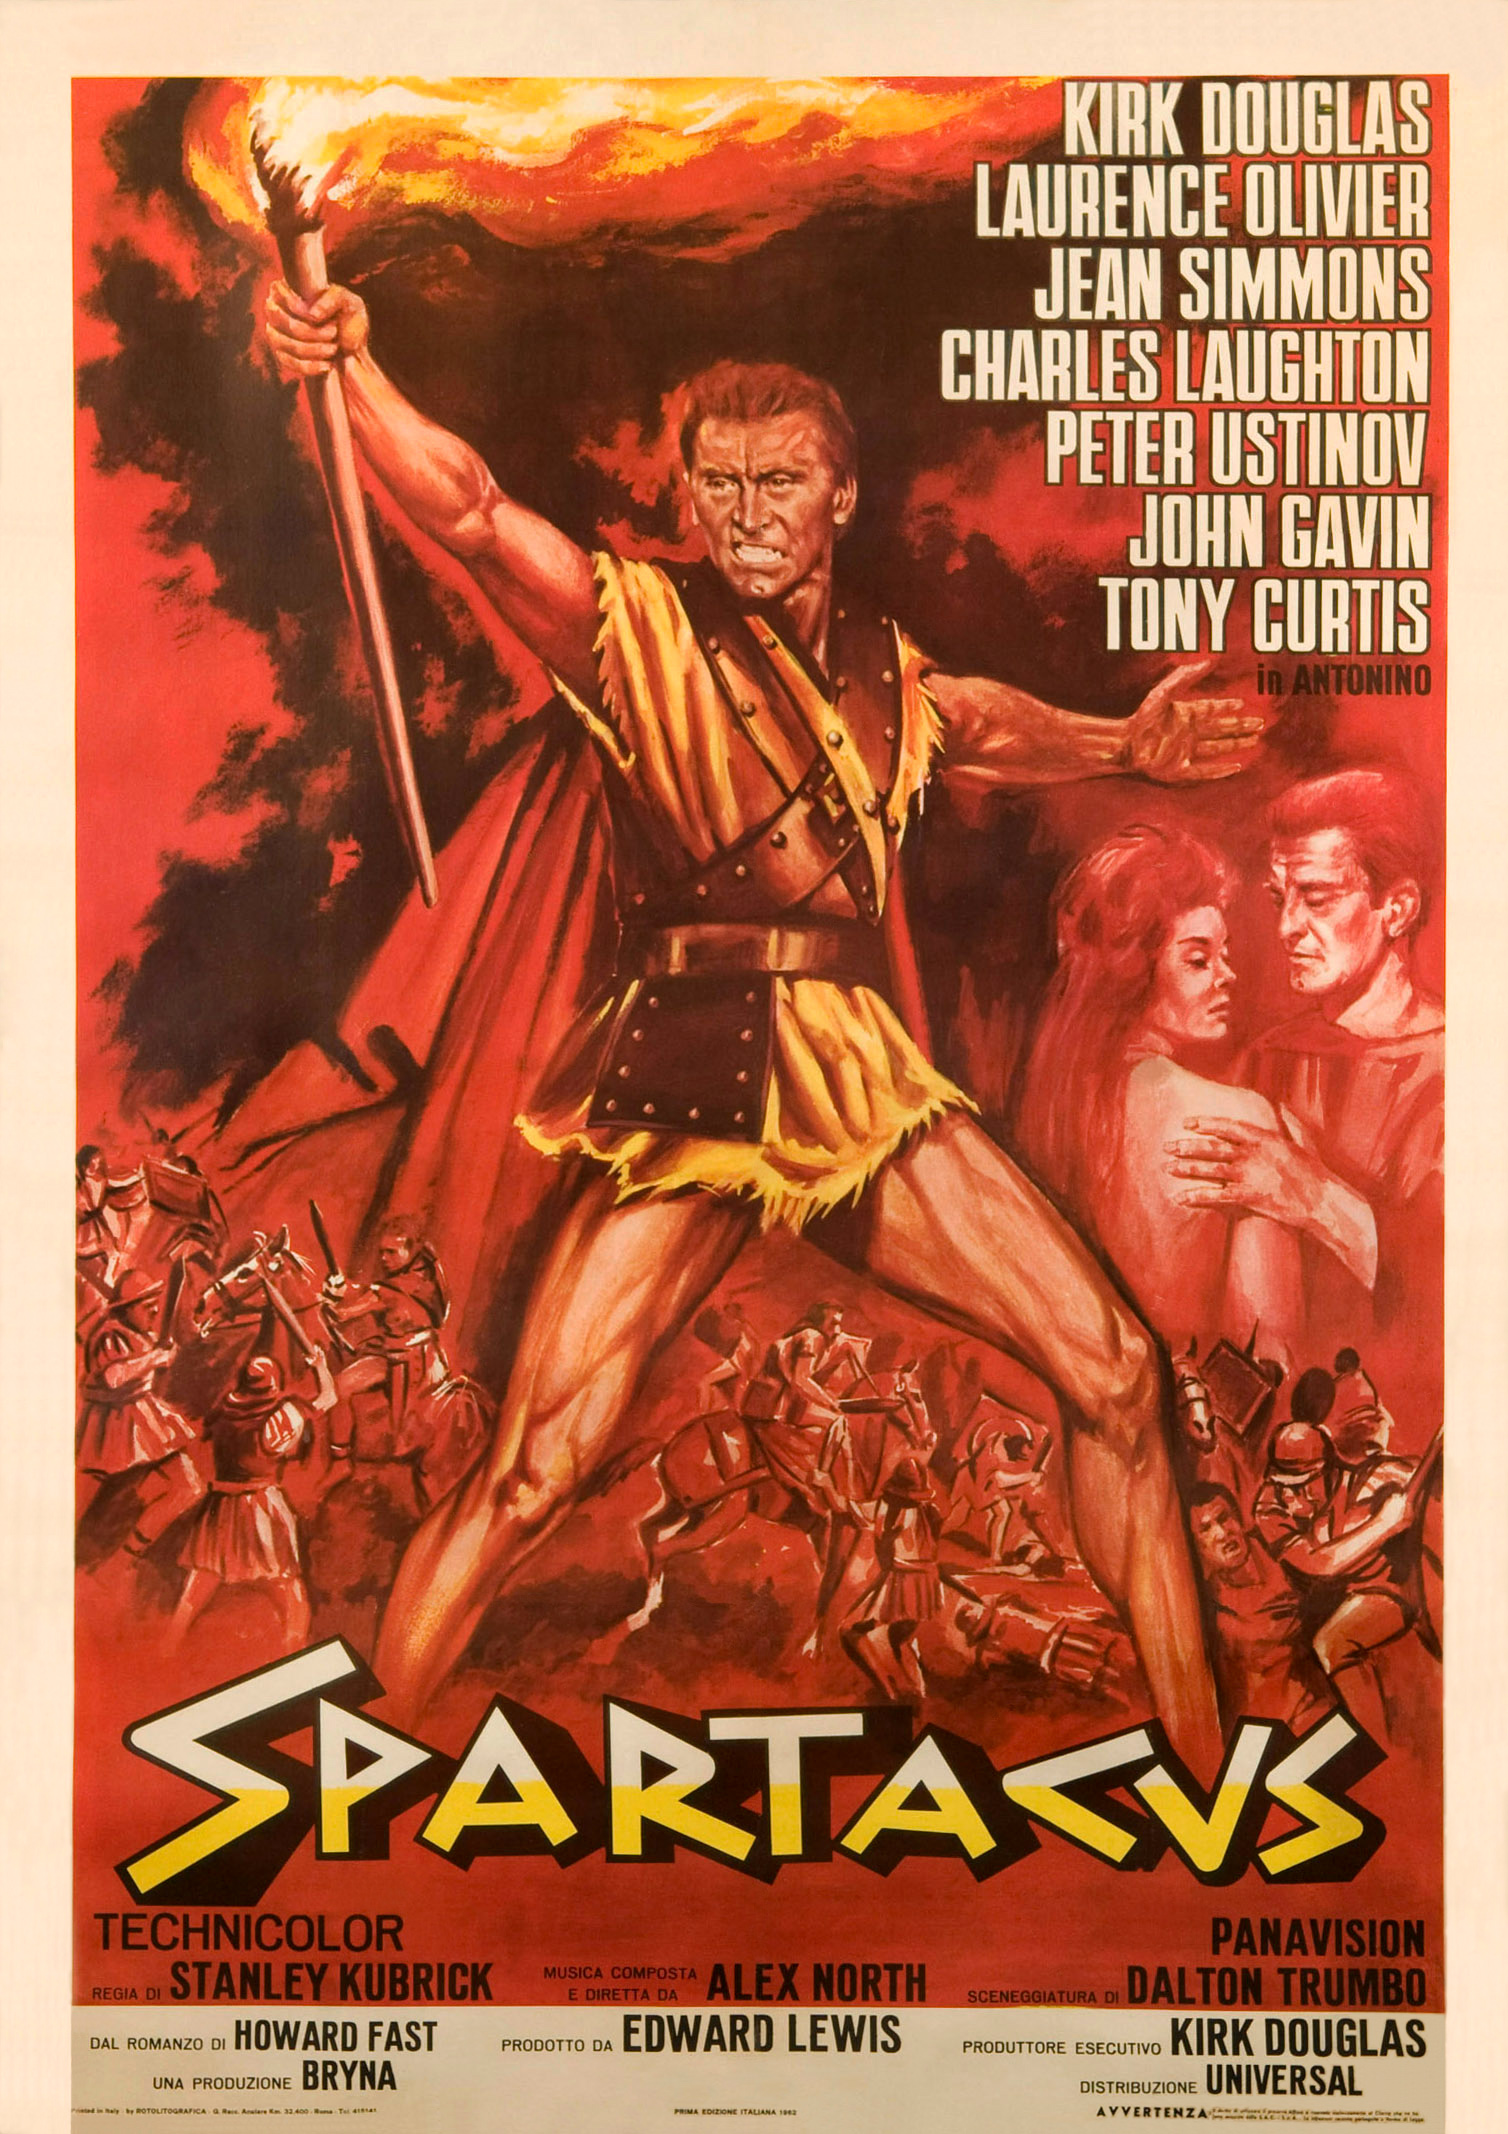 Laurence olivier spartacus quotes - Laurence Olivier Spartacus Quotes 39